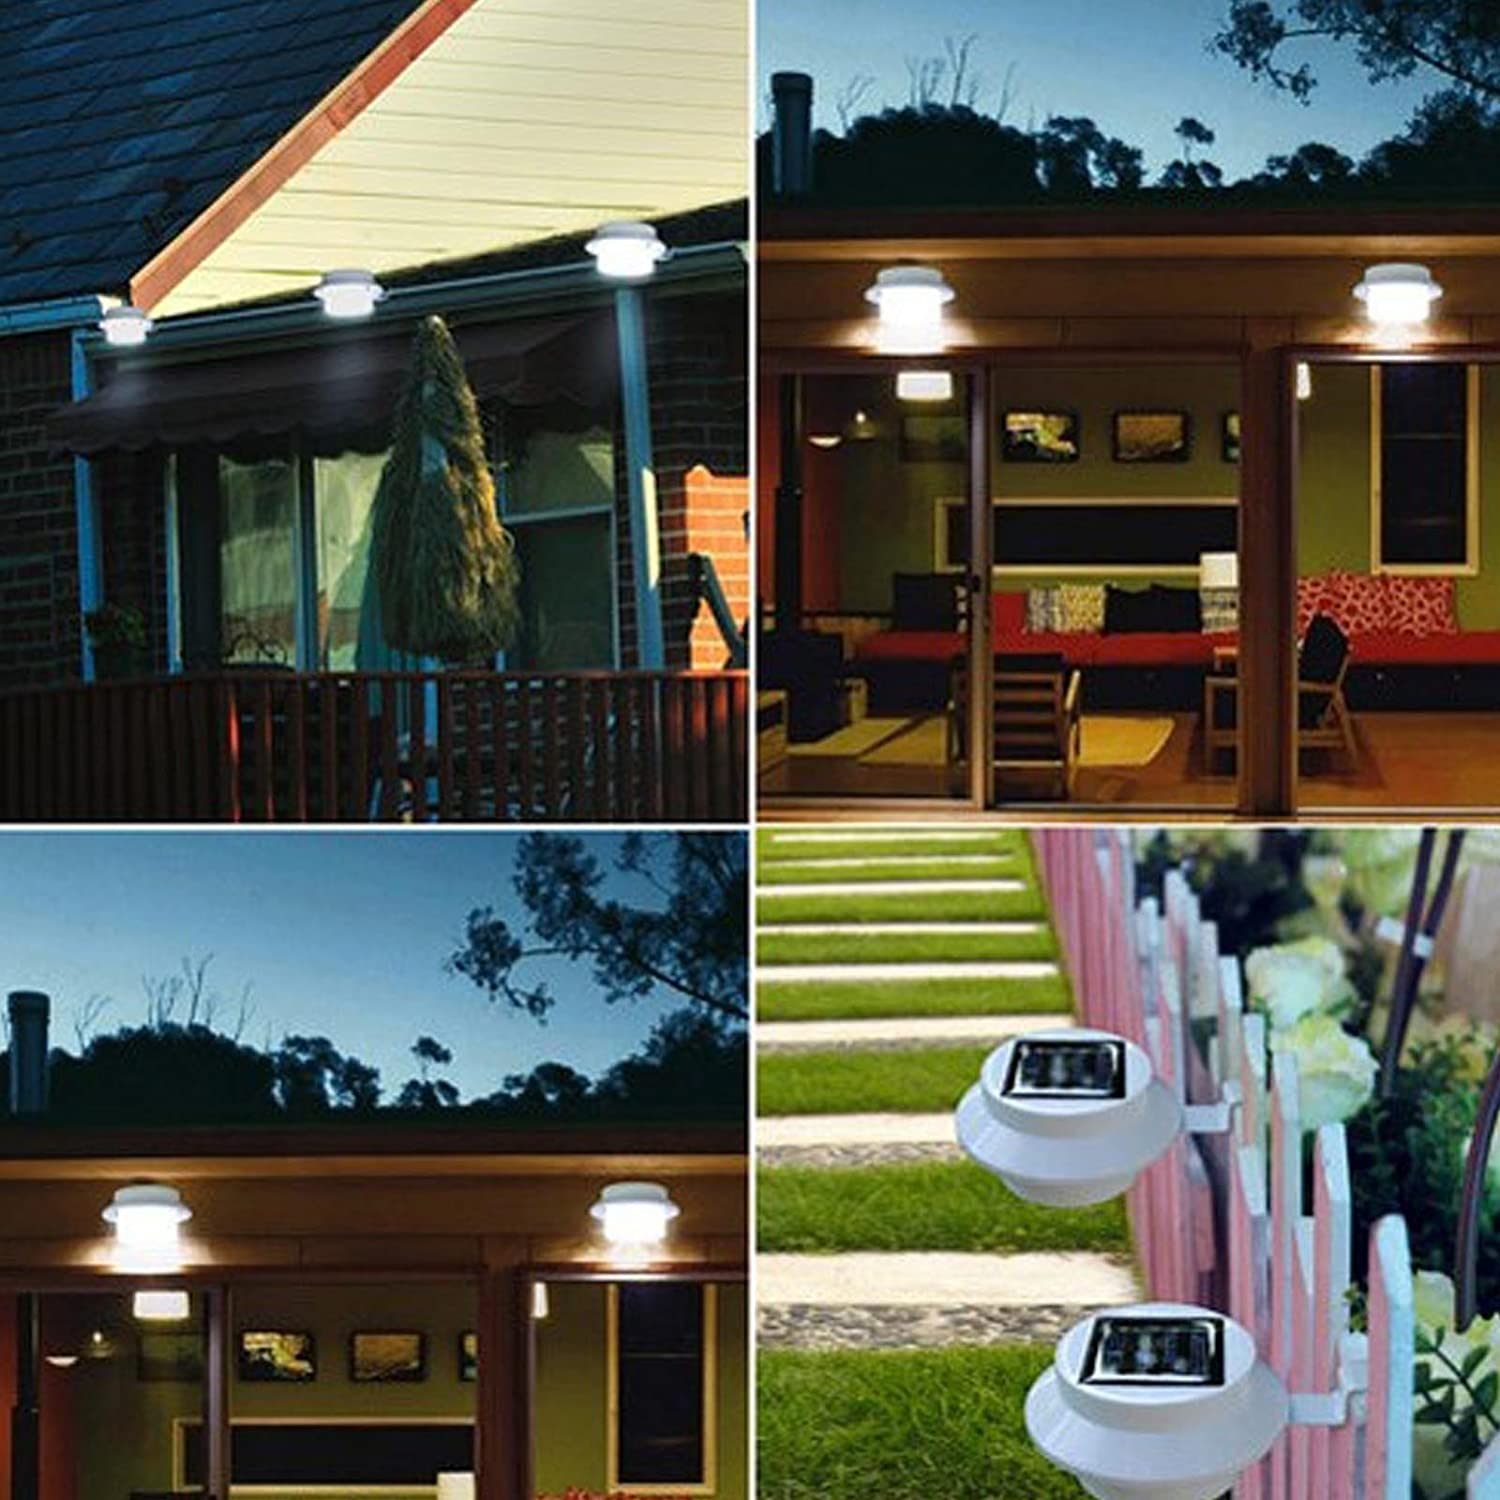 amazoncom outsunny led solar powered outdoor gutter fence wall light white wall porch lights garden u0026 outdoor